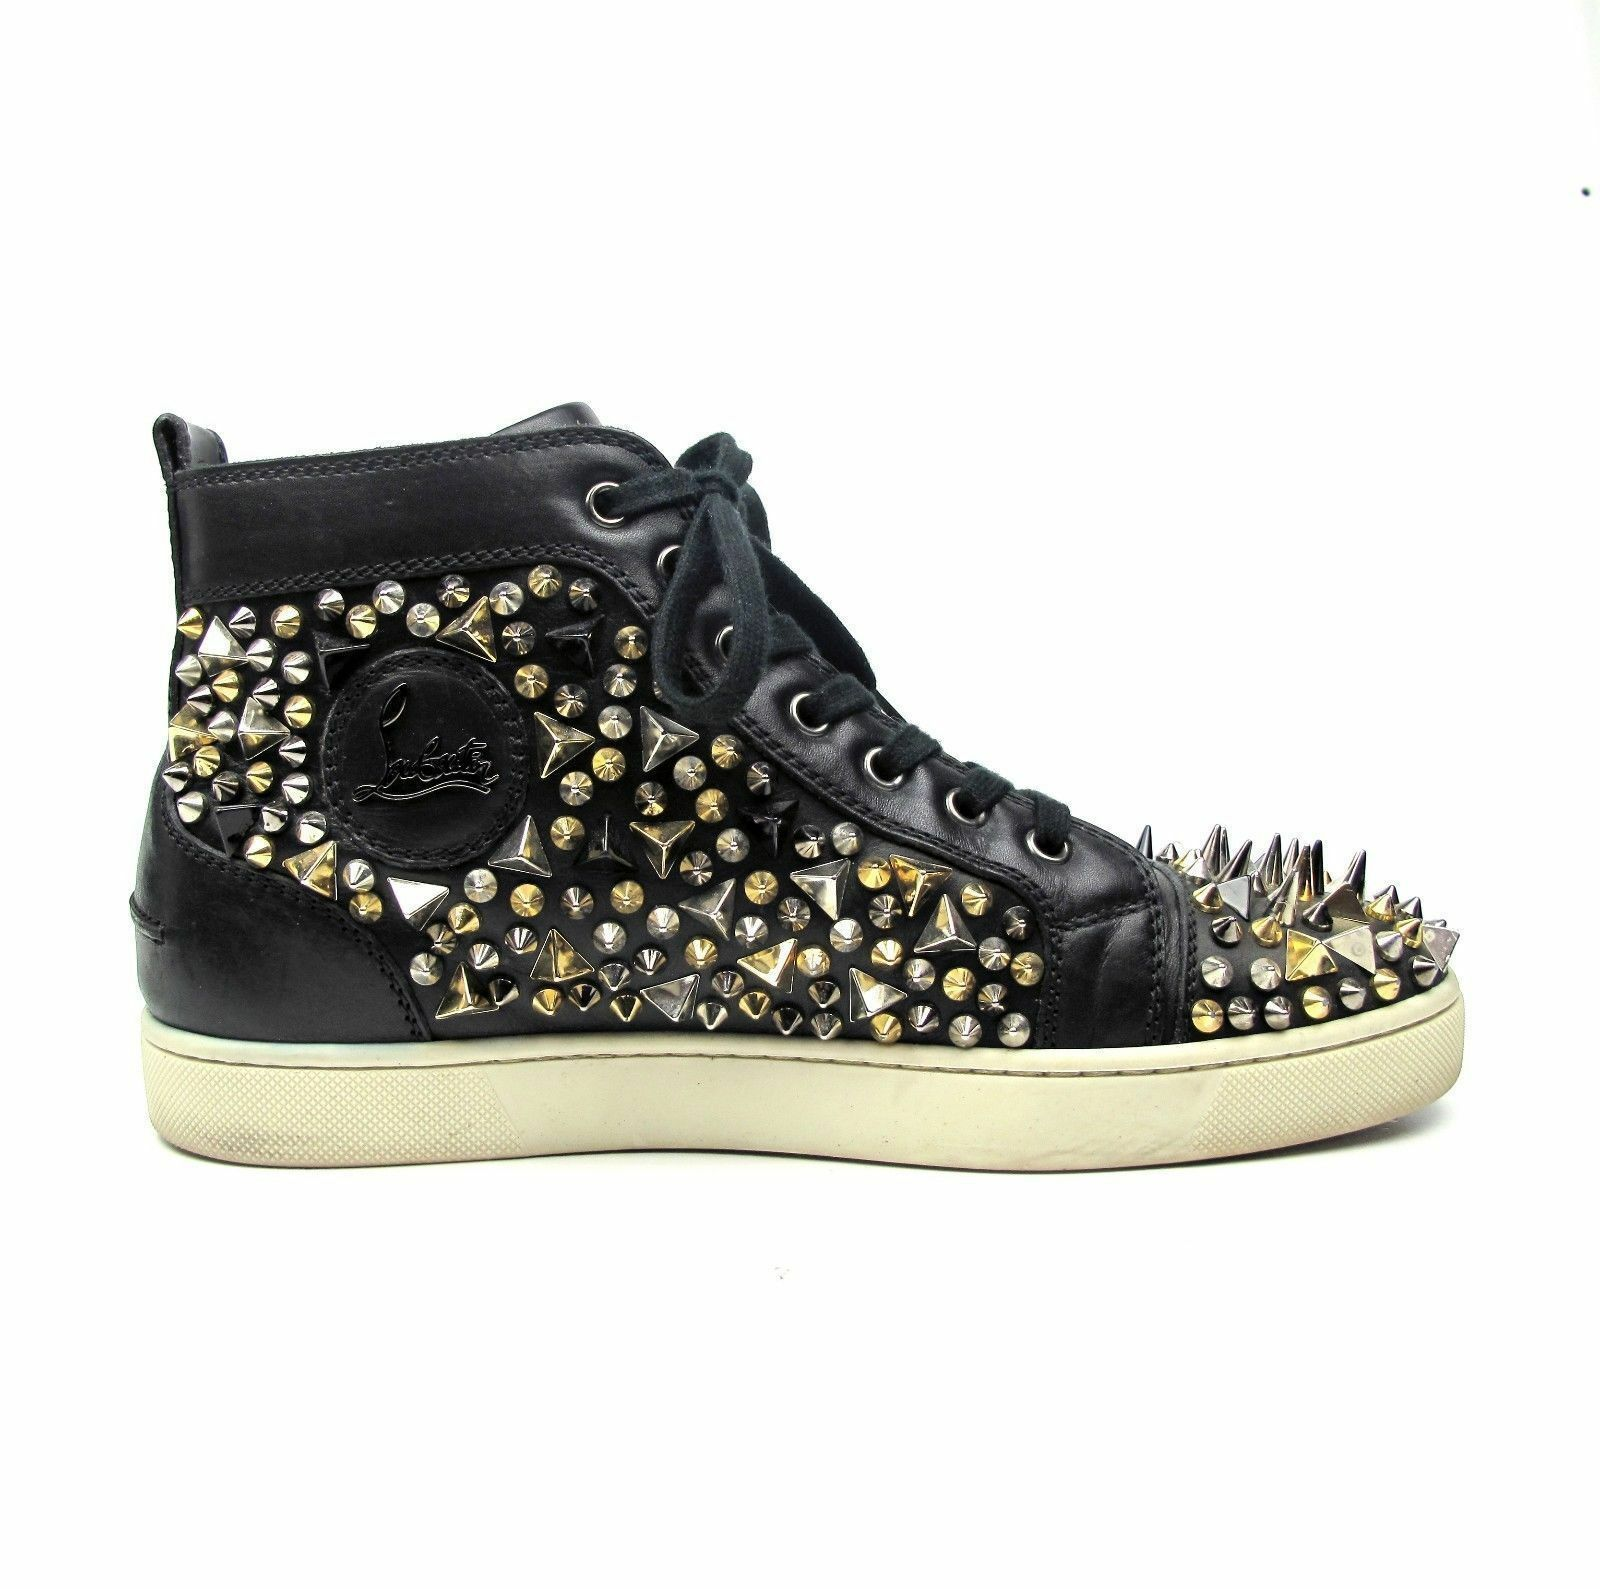 Christian Louboutin Shoes for Men for